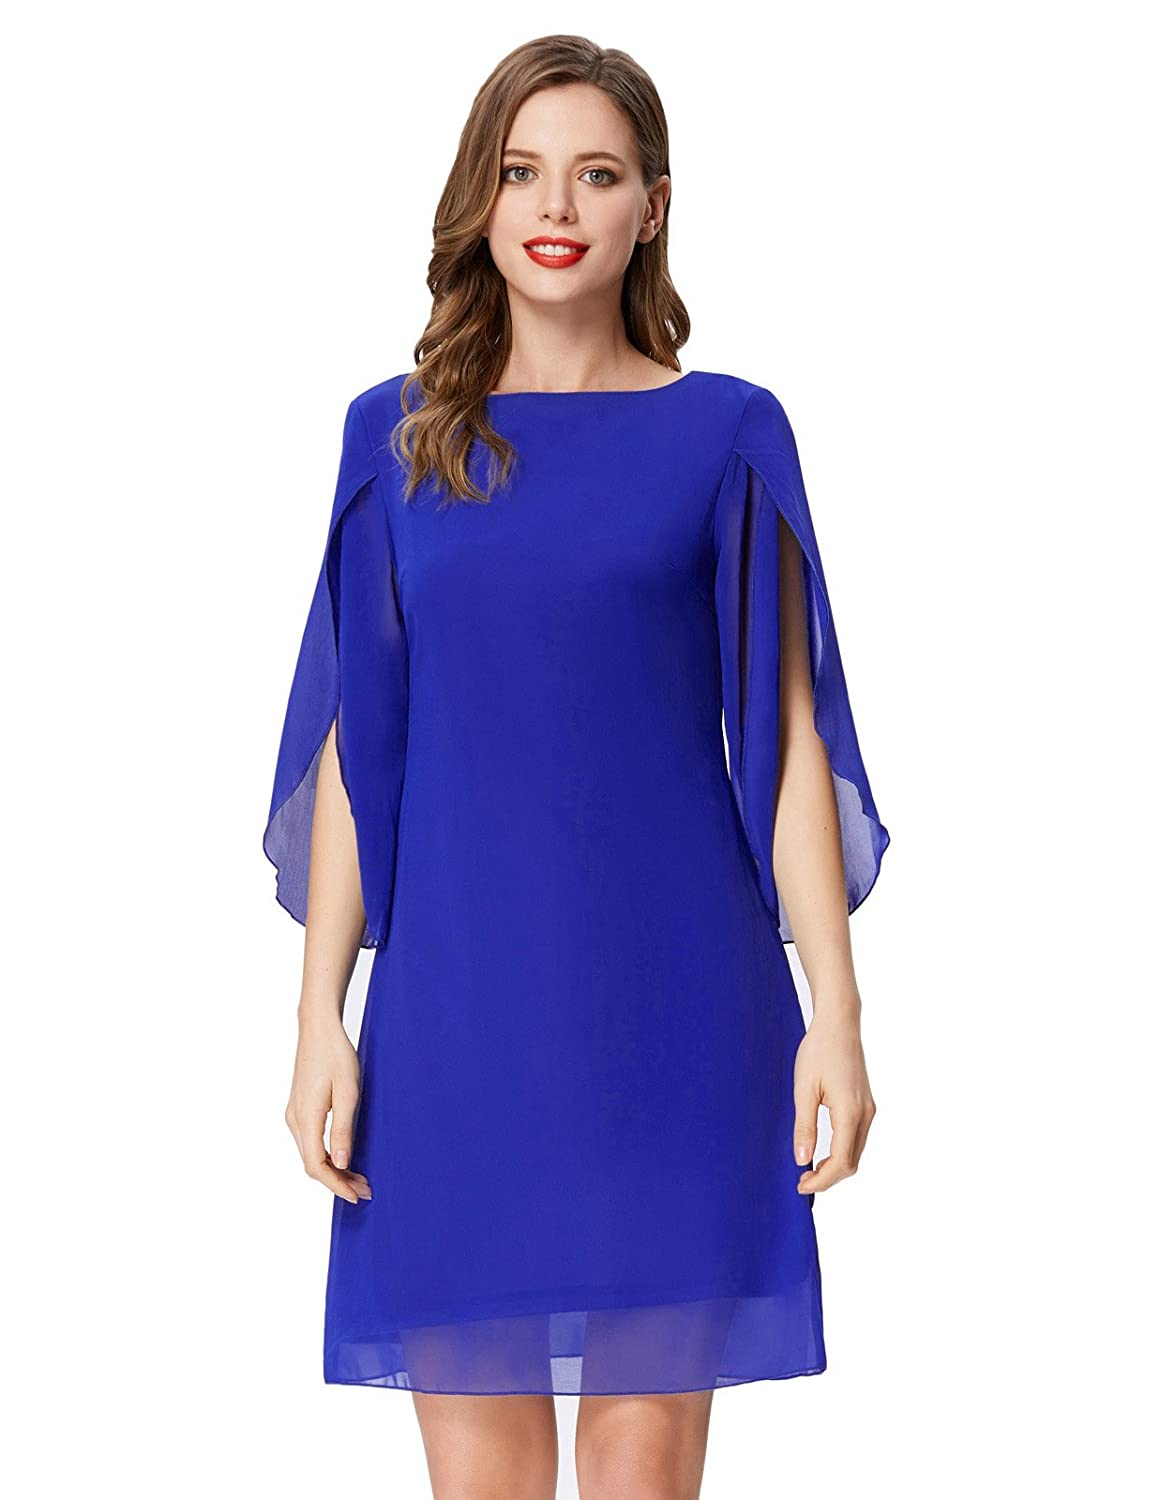 Amazon.com: GRACE KARIN Women Loose Chiffon Dress 3/4 Sleeve Evening Dress for Cocktail Party: Clothing